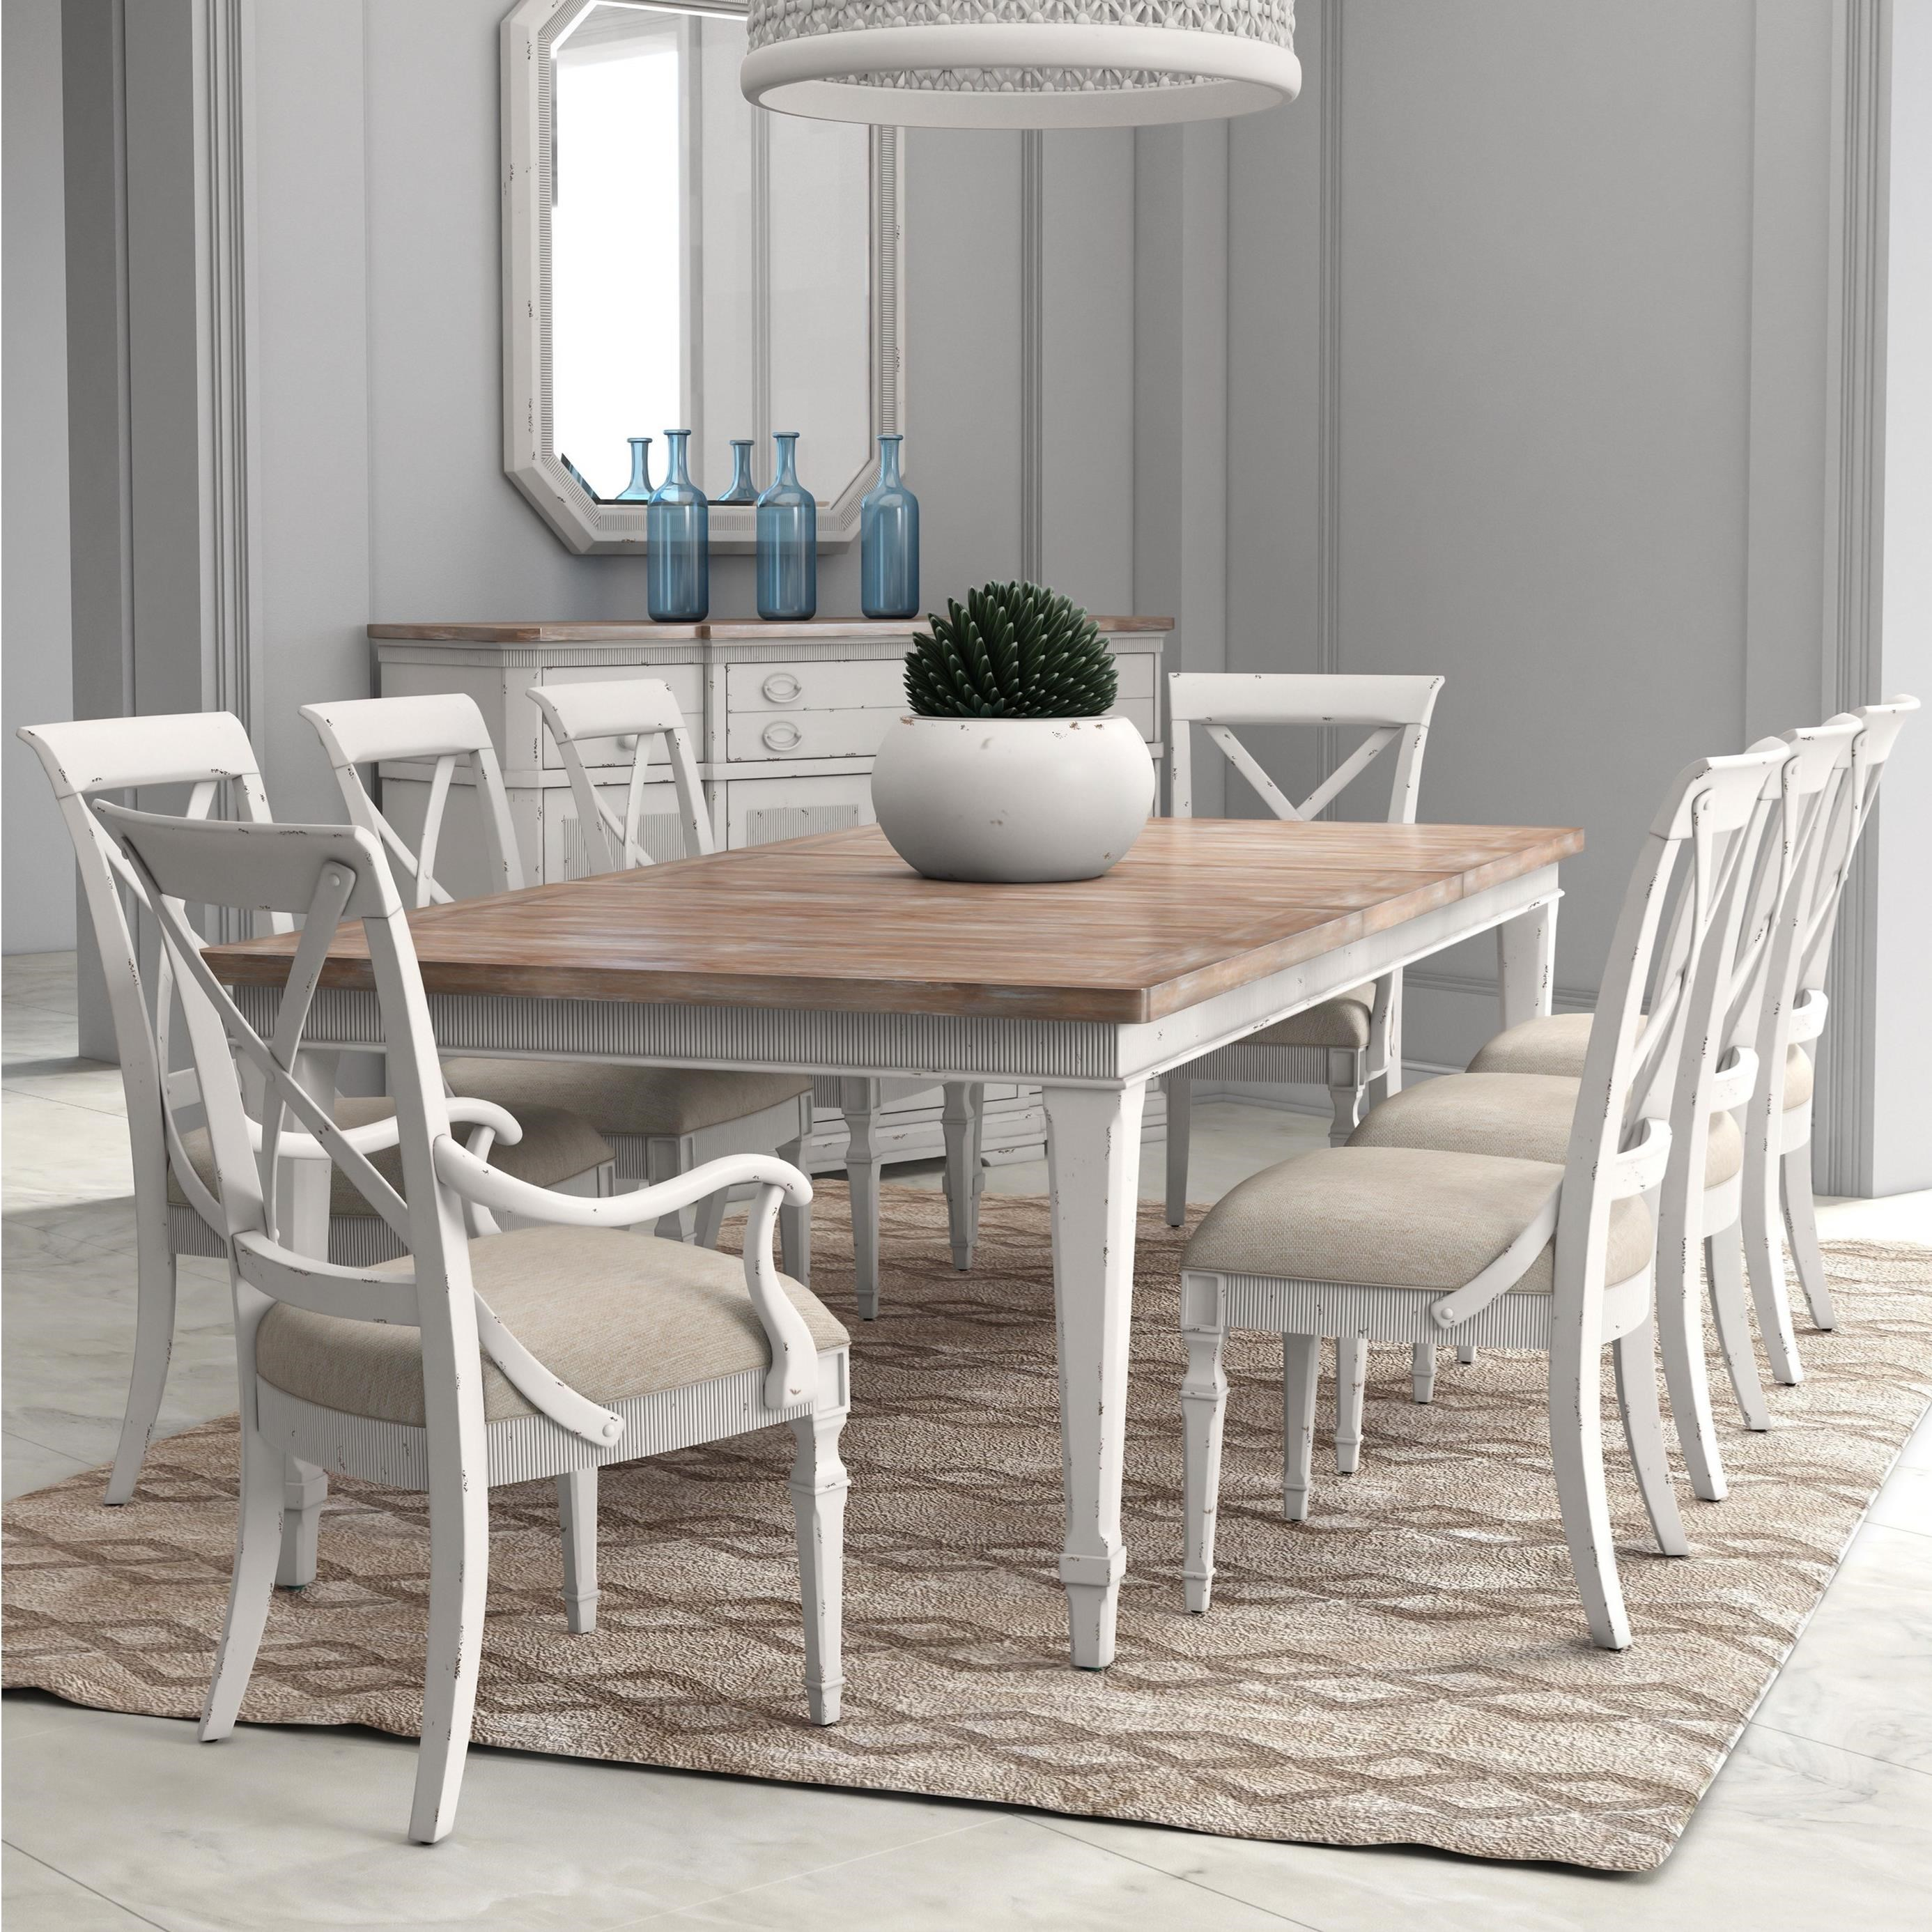 Palisade 9-Piece Dining Table Set by A.R.T. Furniture Inc at Baer's Furniture